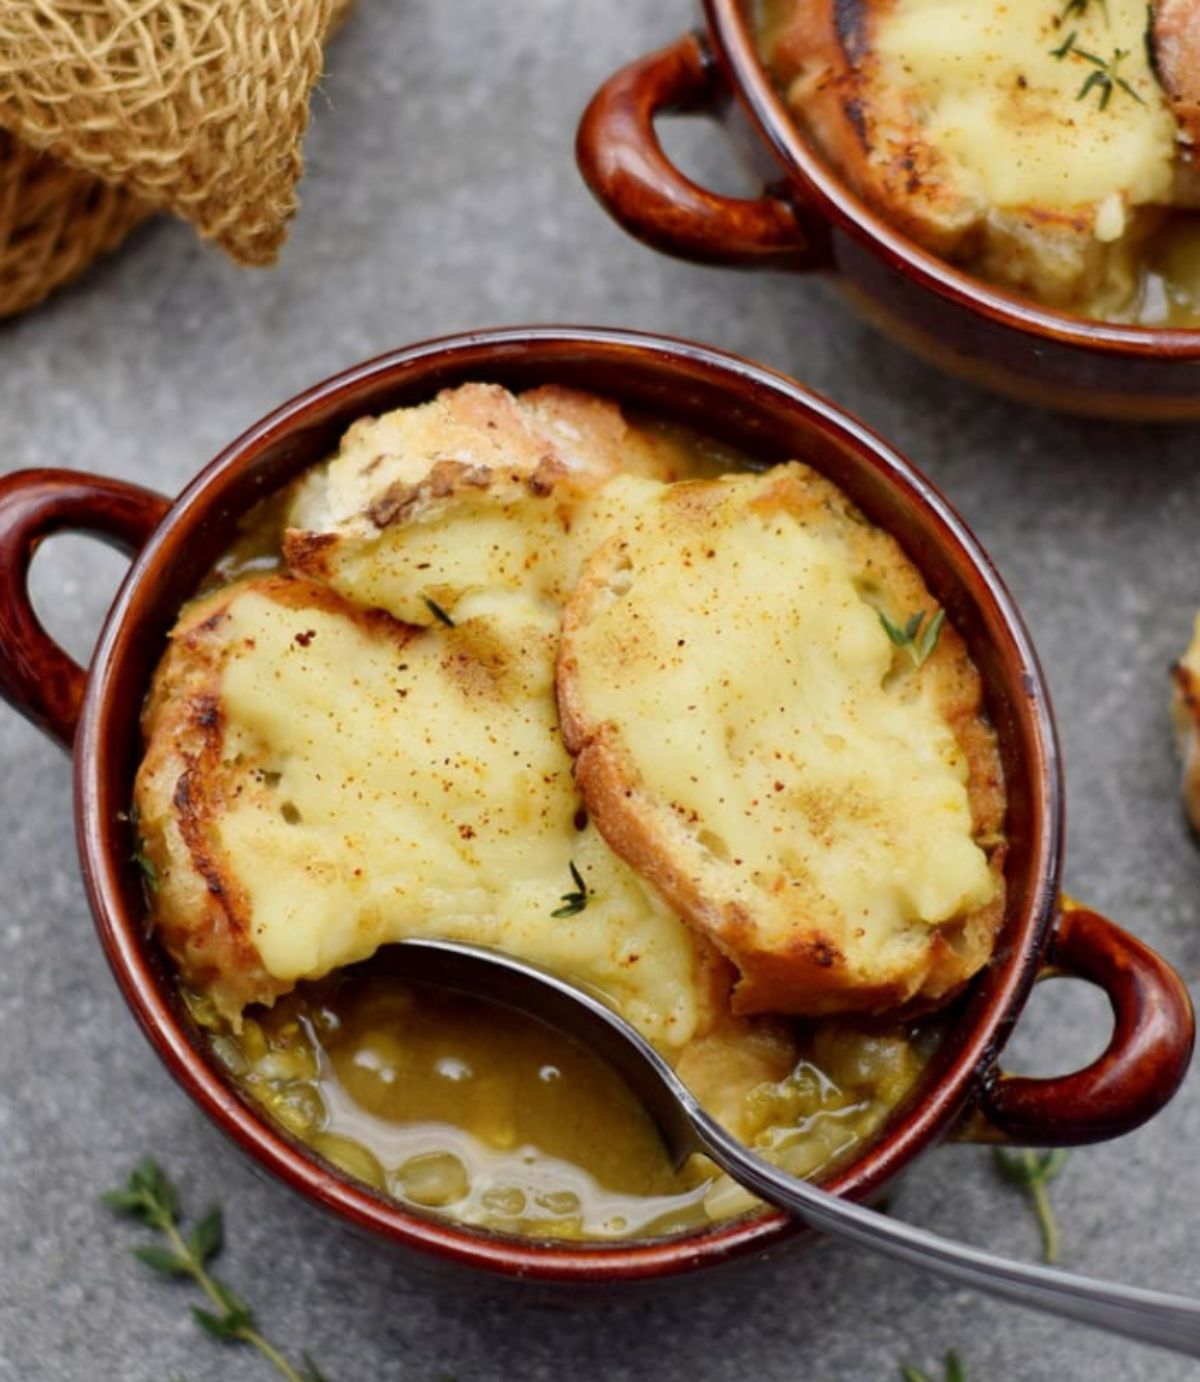 a small red casserole dish filled with french onion soup.